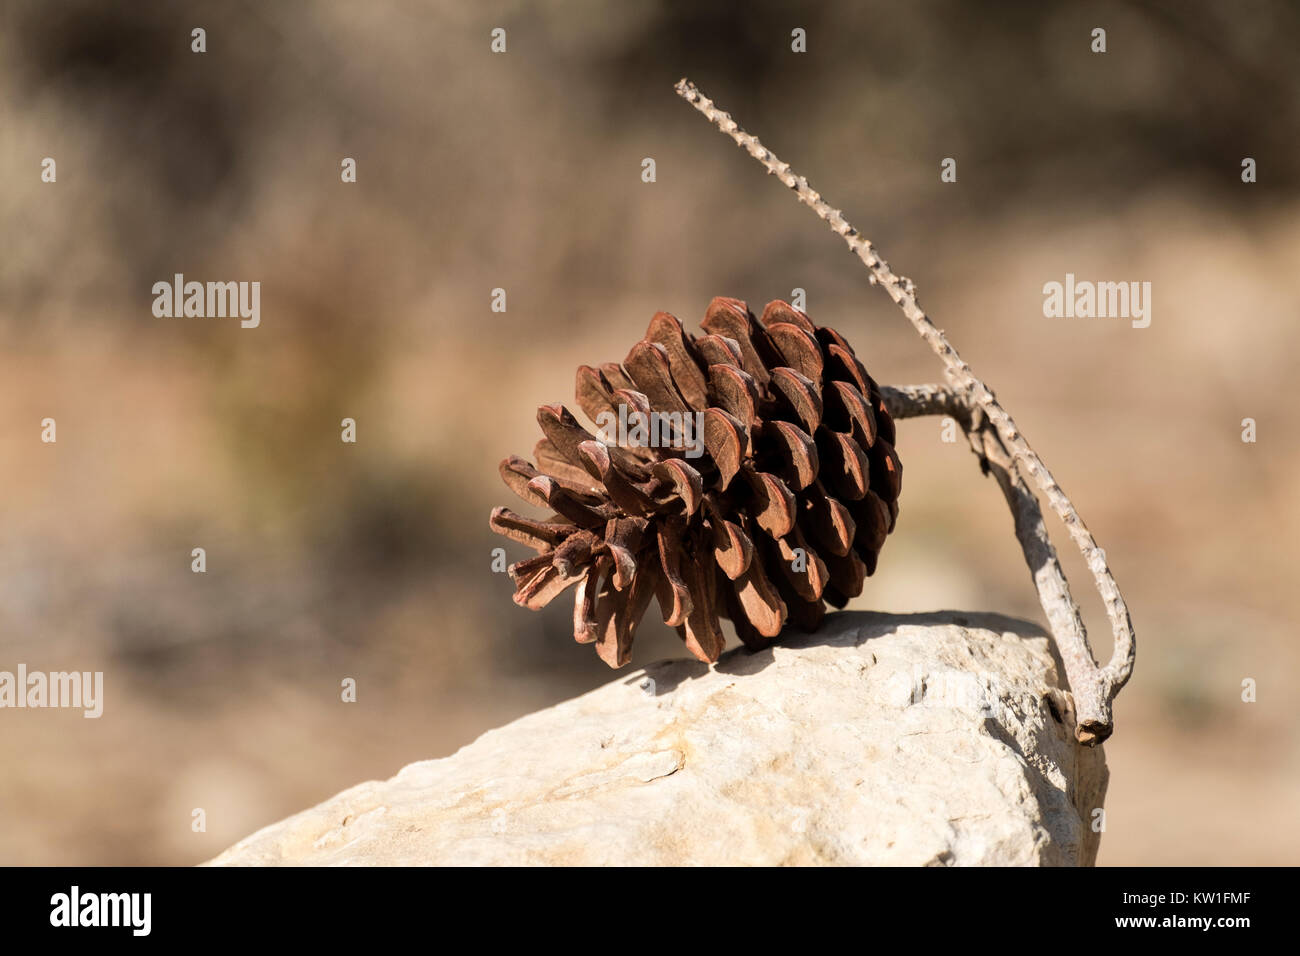 Pine cone lies on a stone on a blurred background - Stock Image